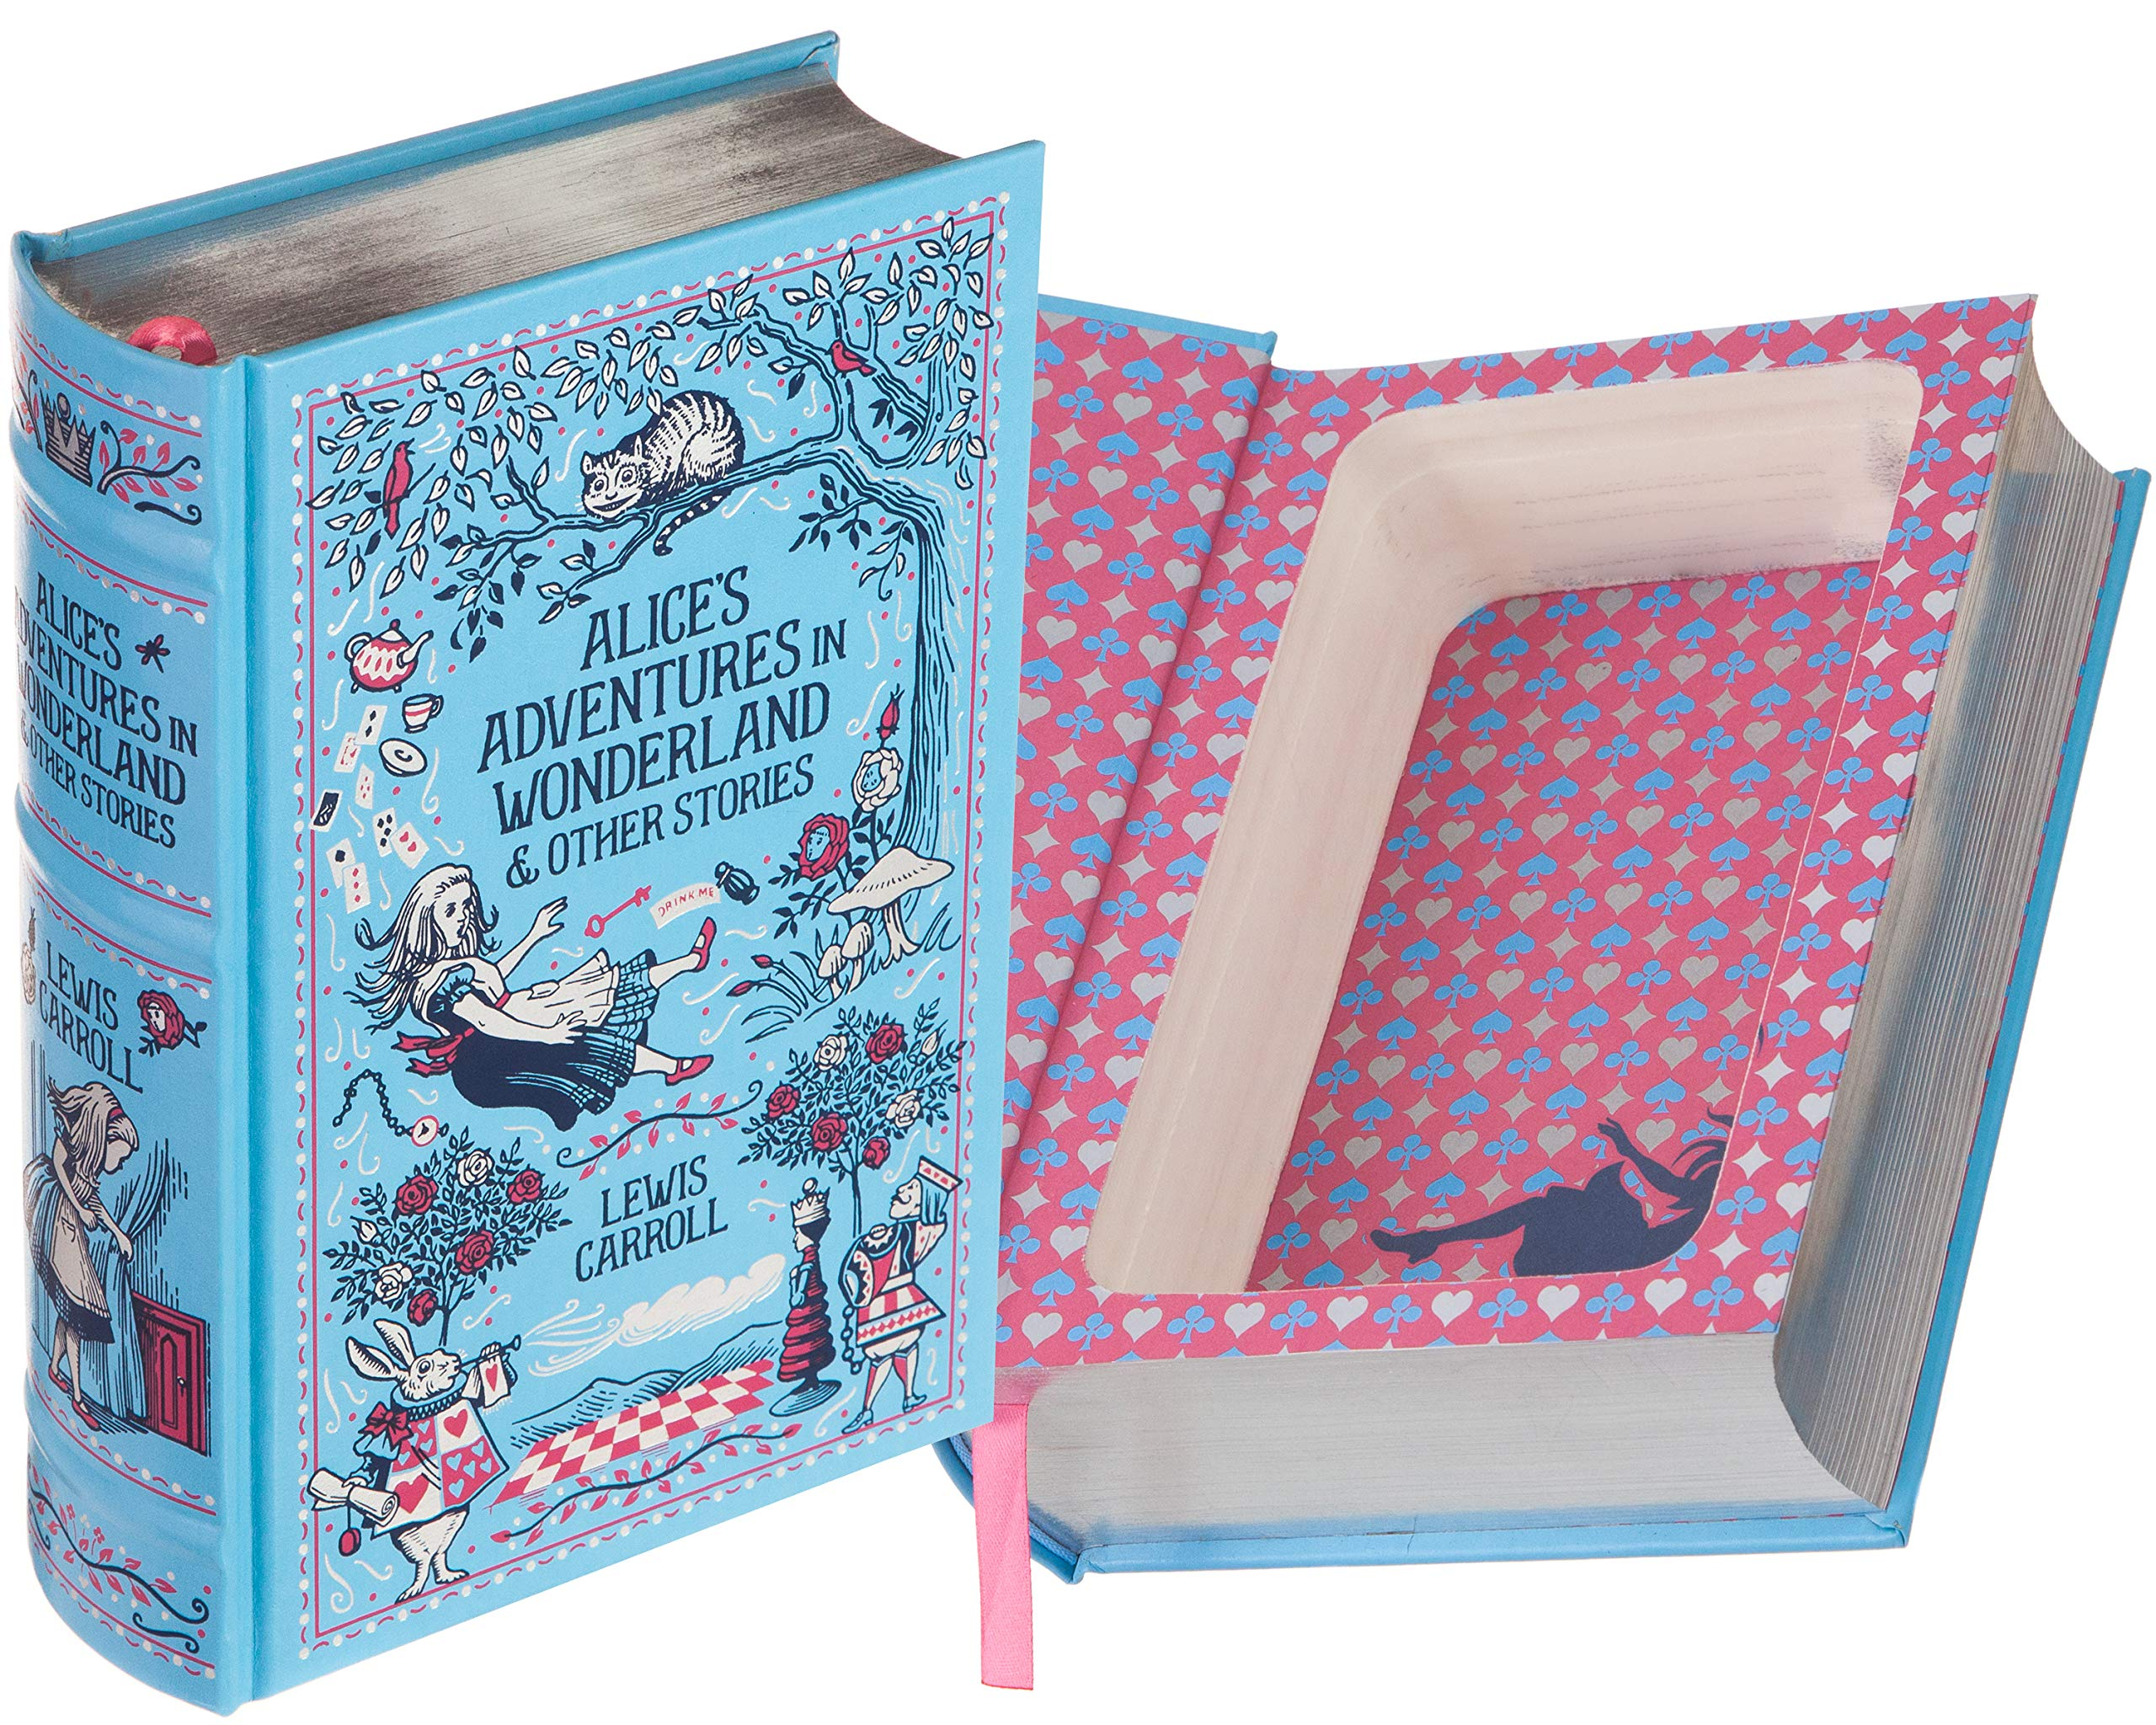 Real Hollow Book Safe - Alice's Adventures in Wonderland by Lewis Carroll (Magnetic Closure) (Leather-bound)